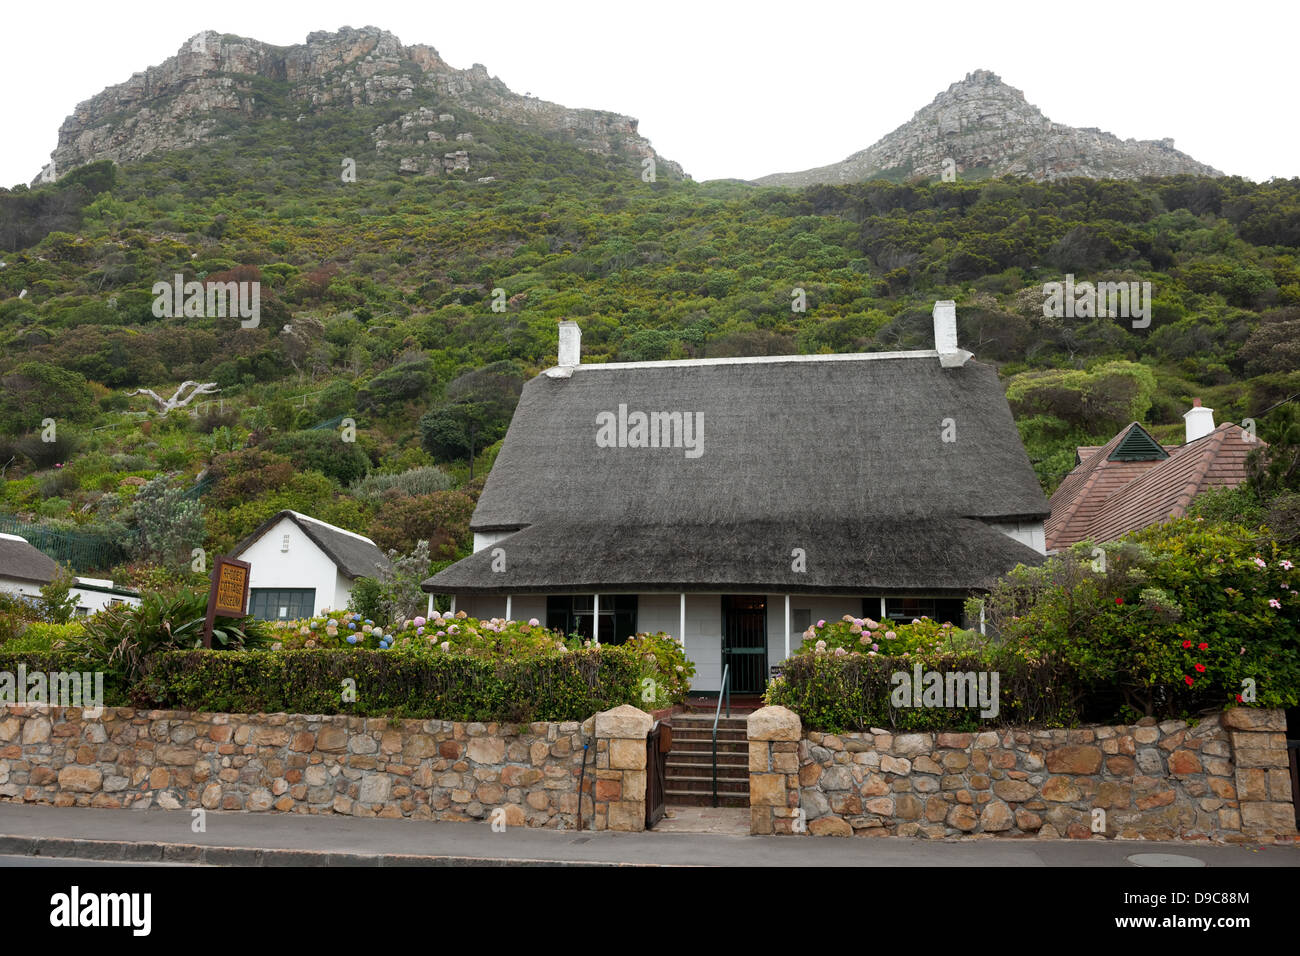 Rhodes' Cottage Museum, Muizenberg, False Bay, South Africa - Stock Image